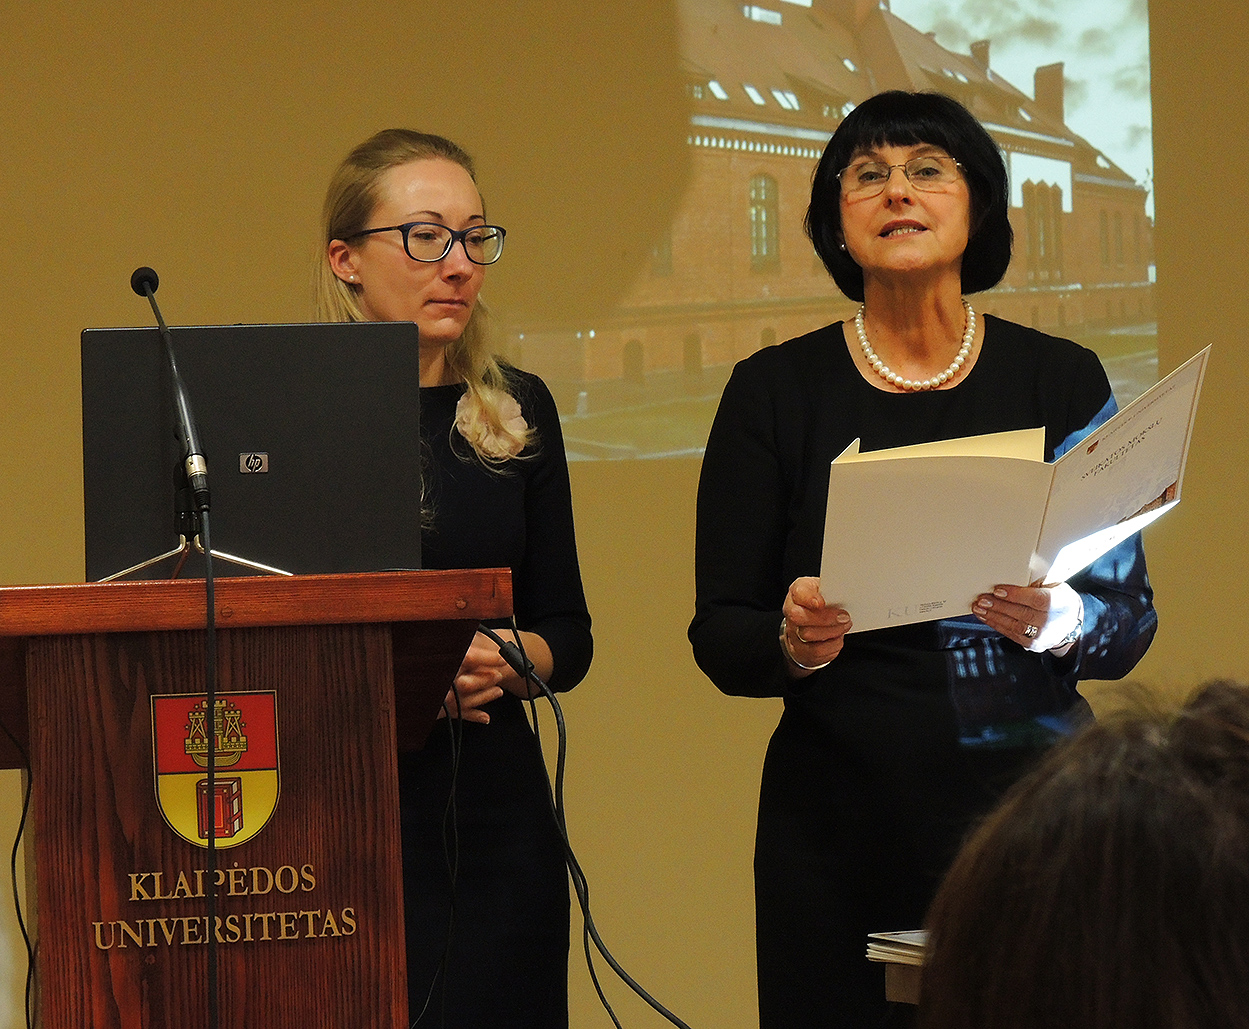 Prof. Elvyra Aciene from Klaipeda University – DrHC at Latvian Christian Academy